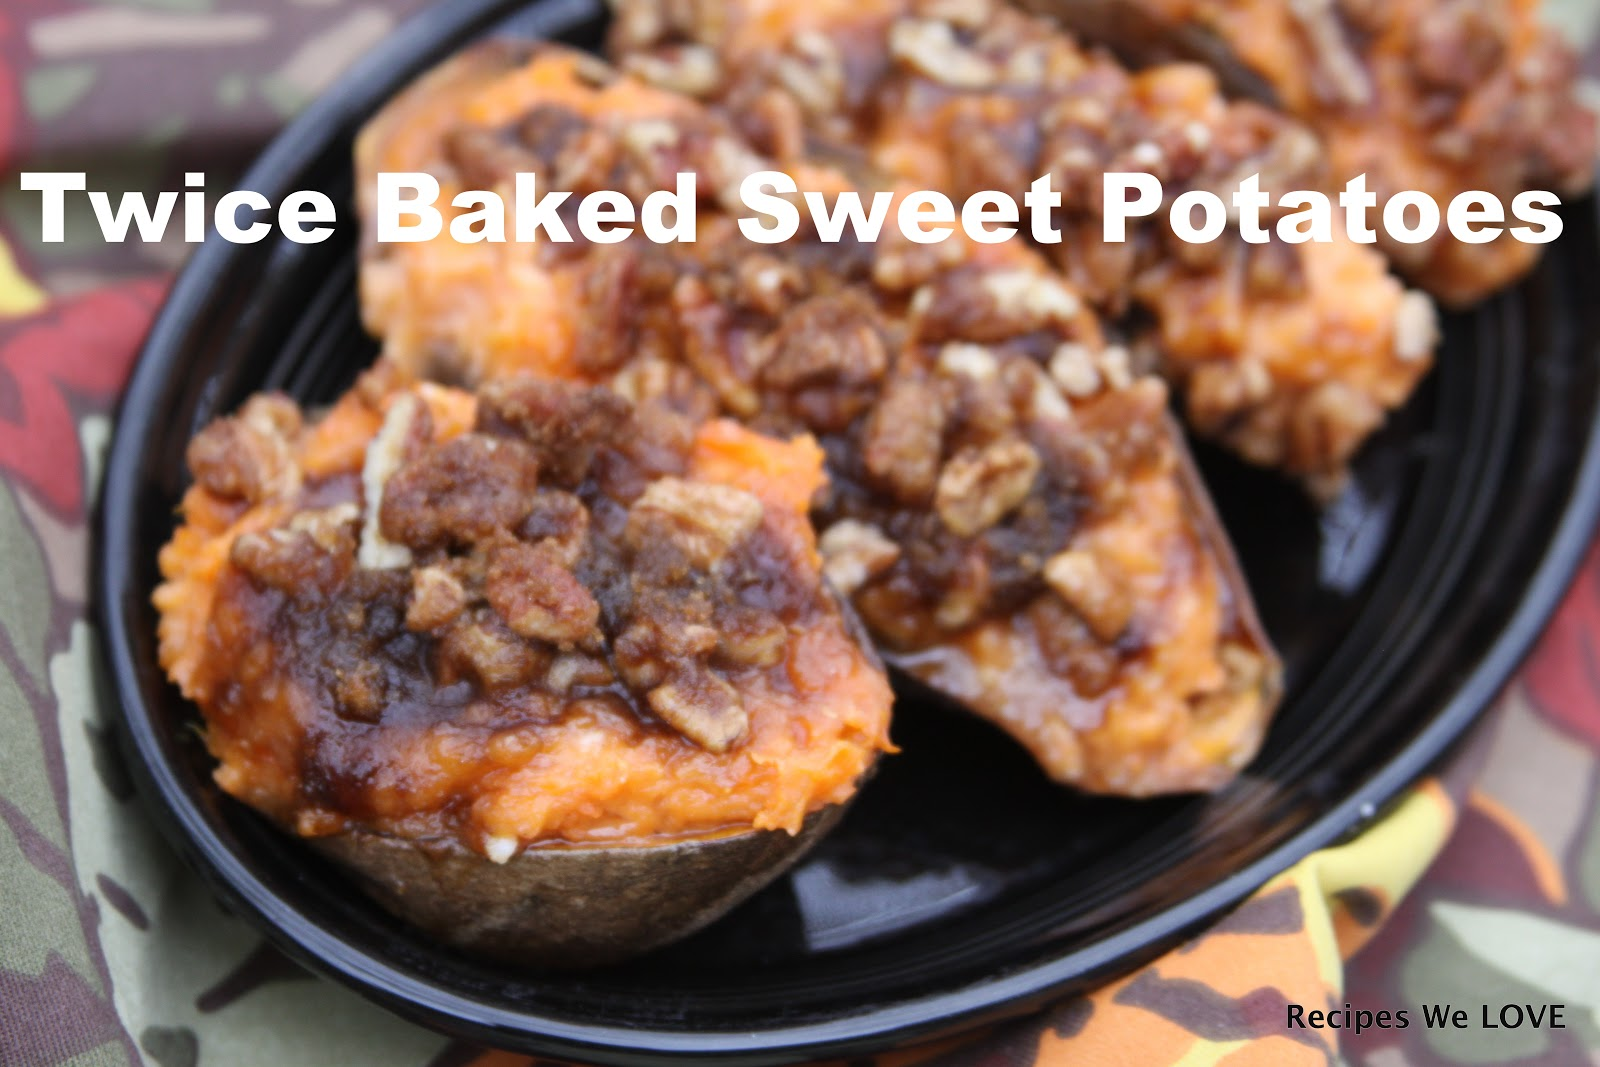 Recipes We Love: Twice Baked Sweet Potatoes